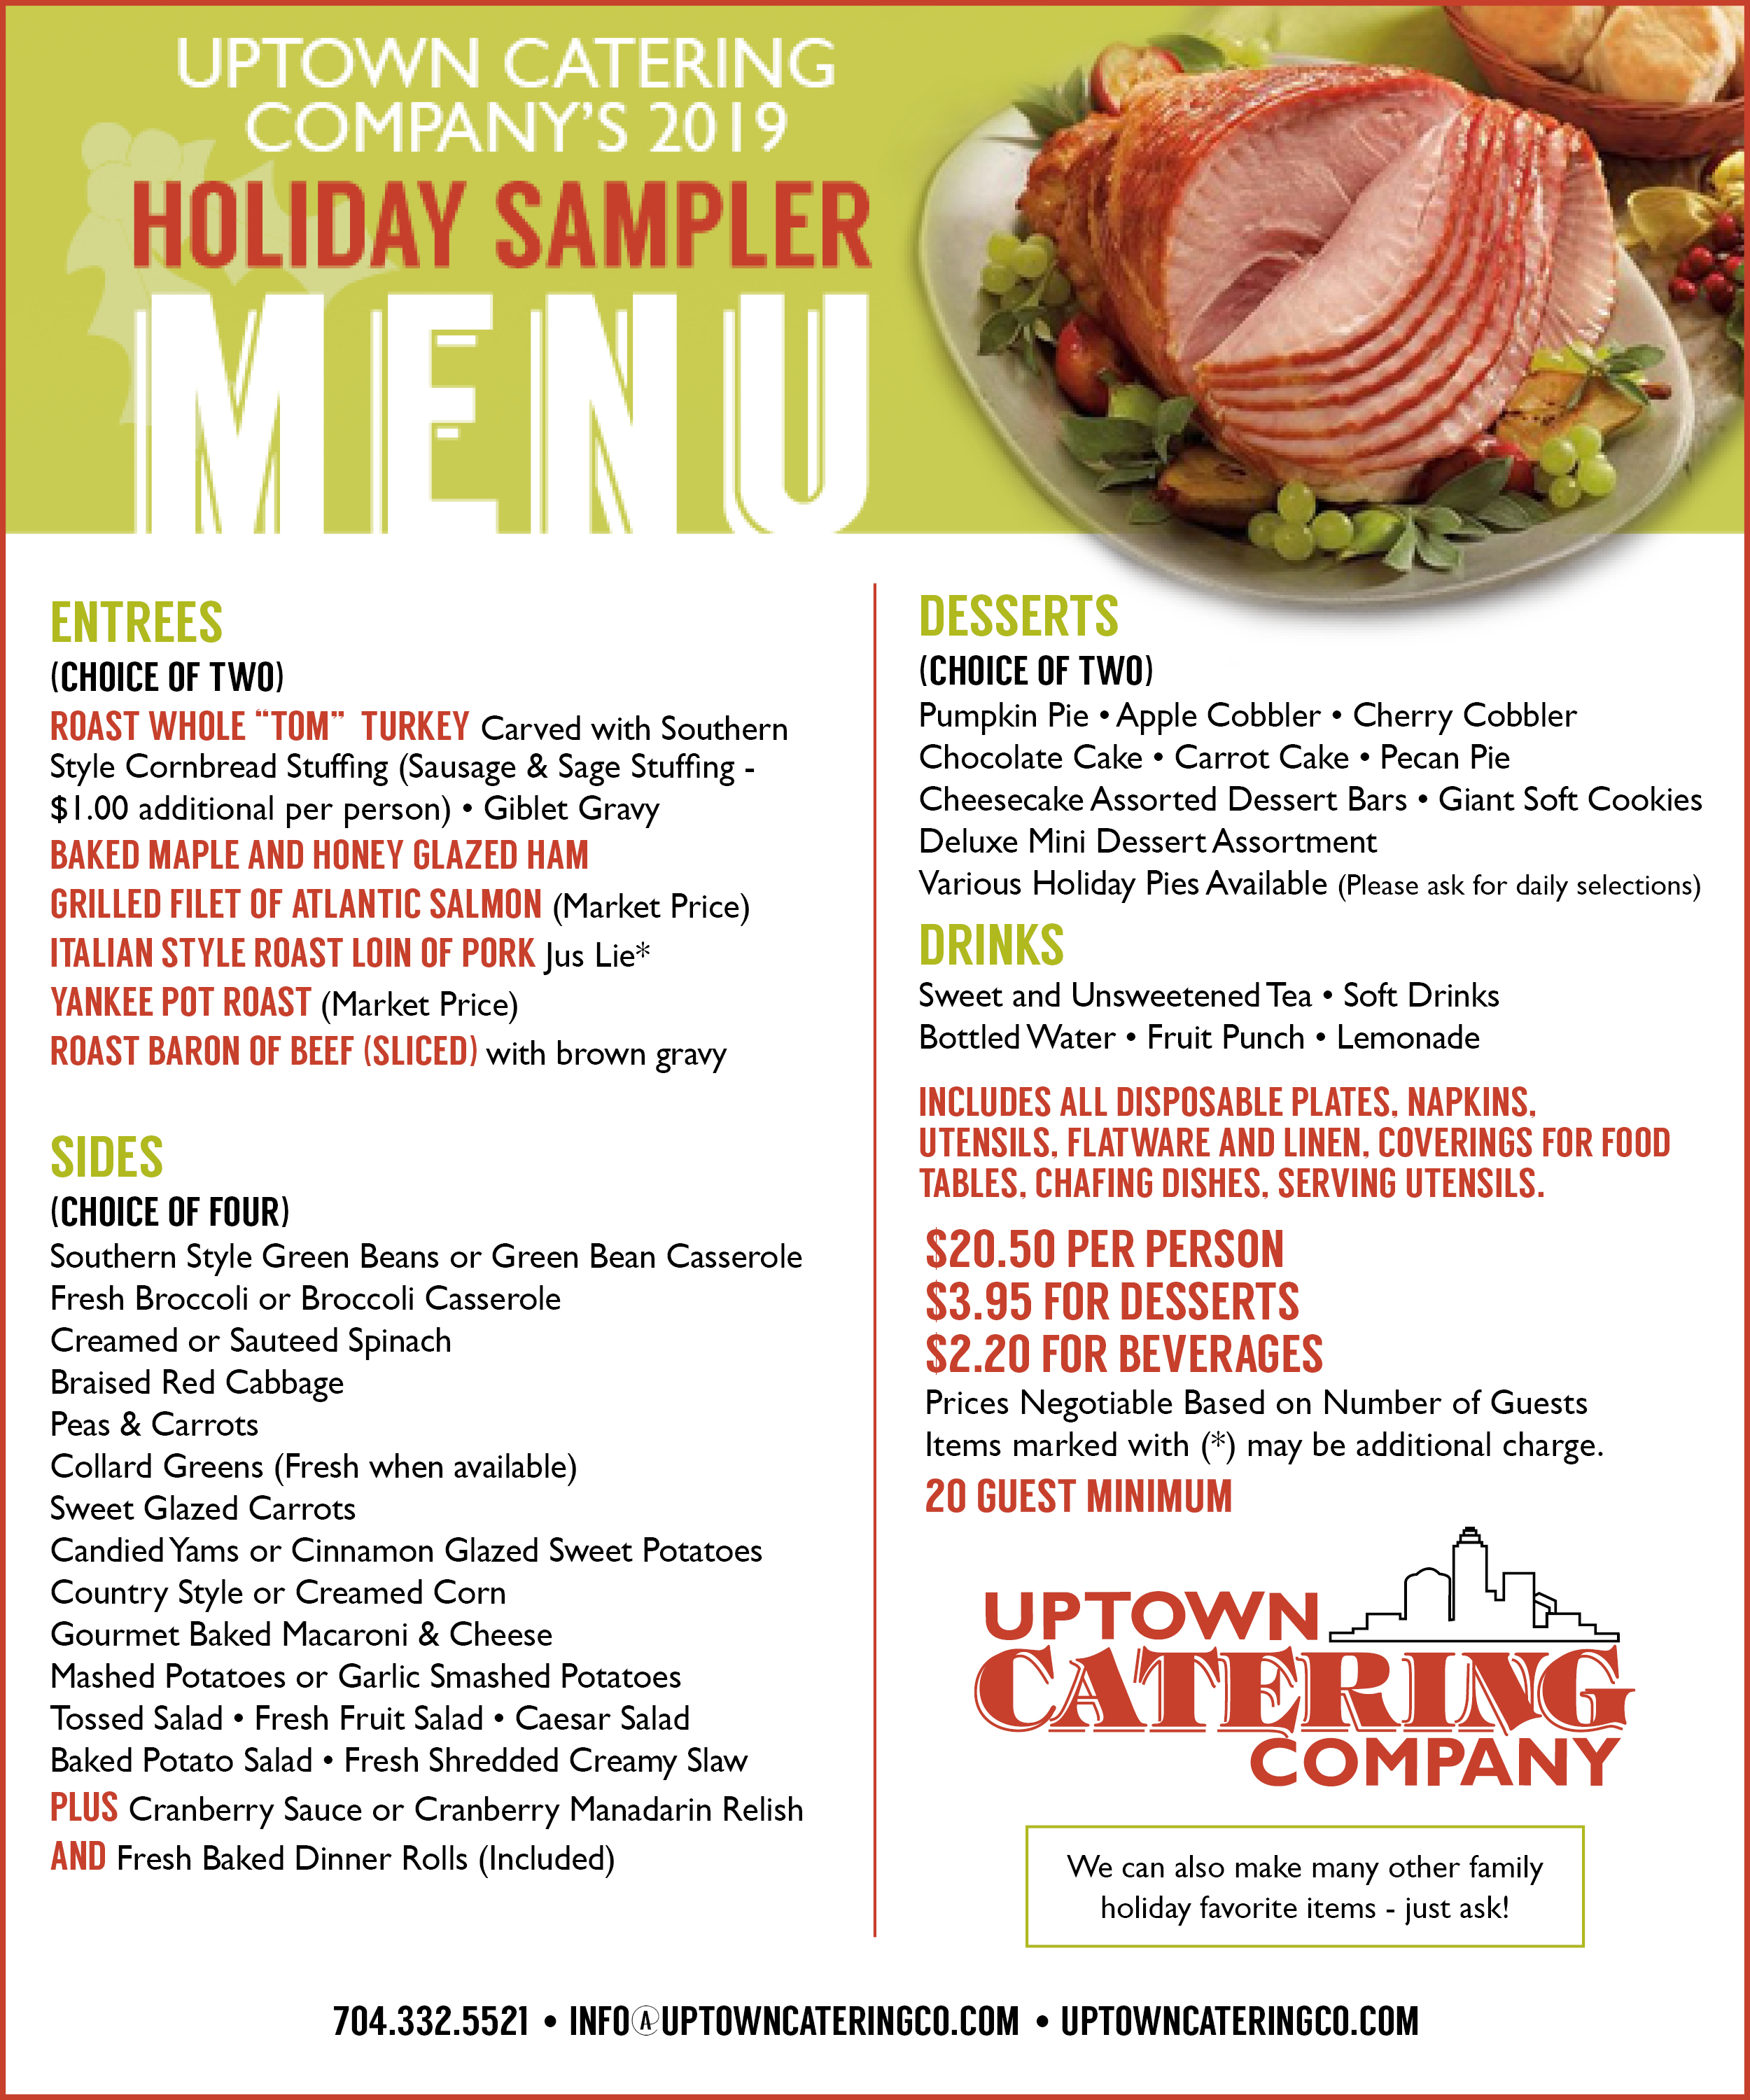 RESERVE NOW FOR YOUR ALL YOUR HOLIDAY CATERING NEEDS!